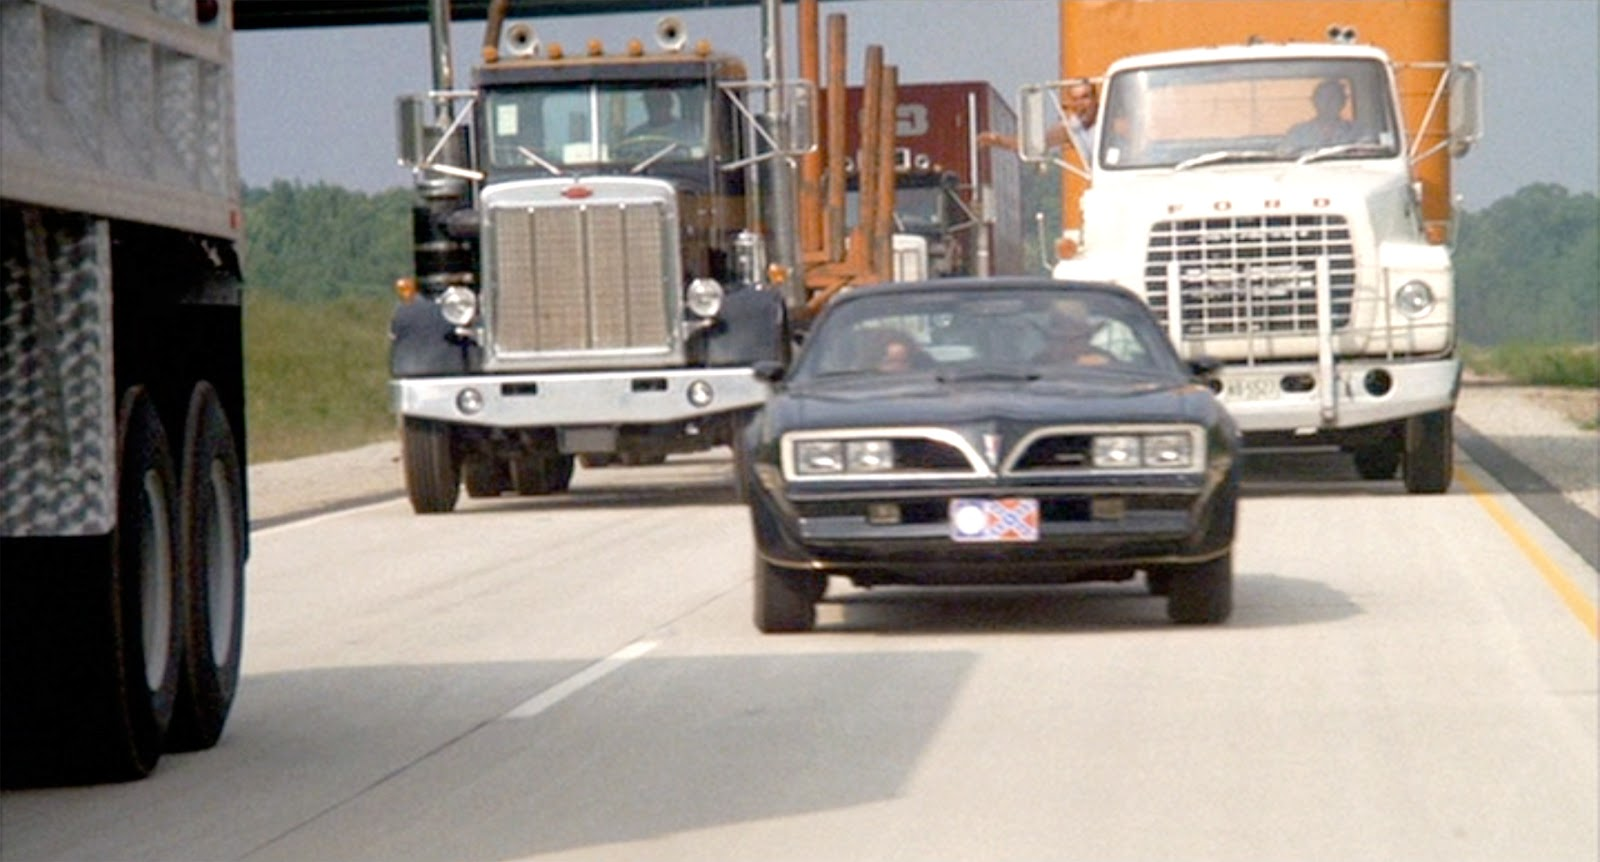 smokey and the bandit – 1977 pontiac (firebird) trans am